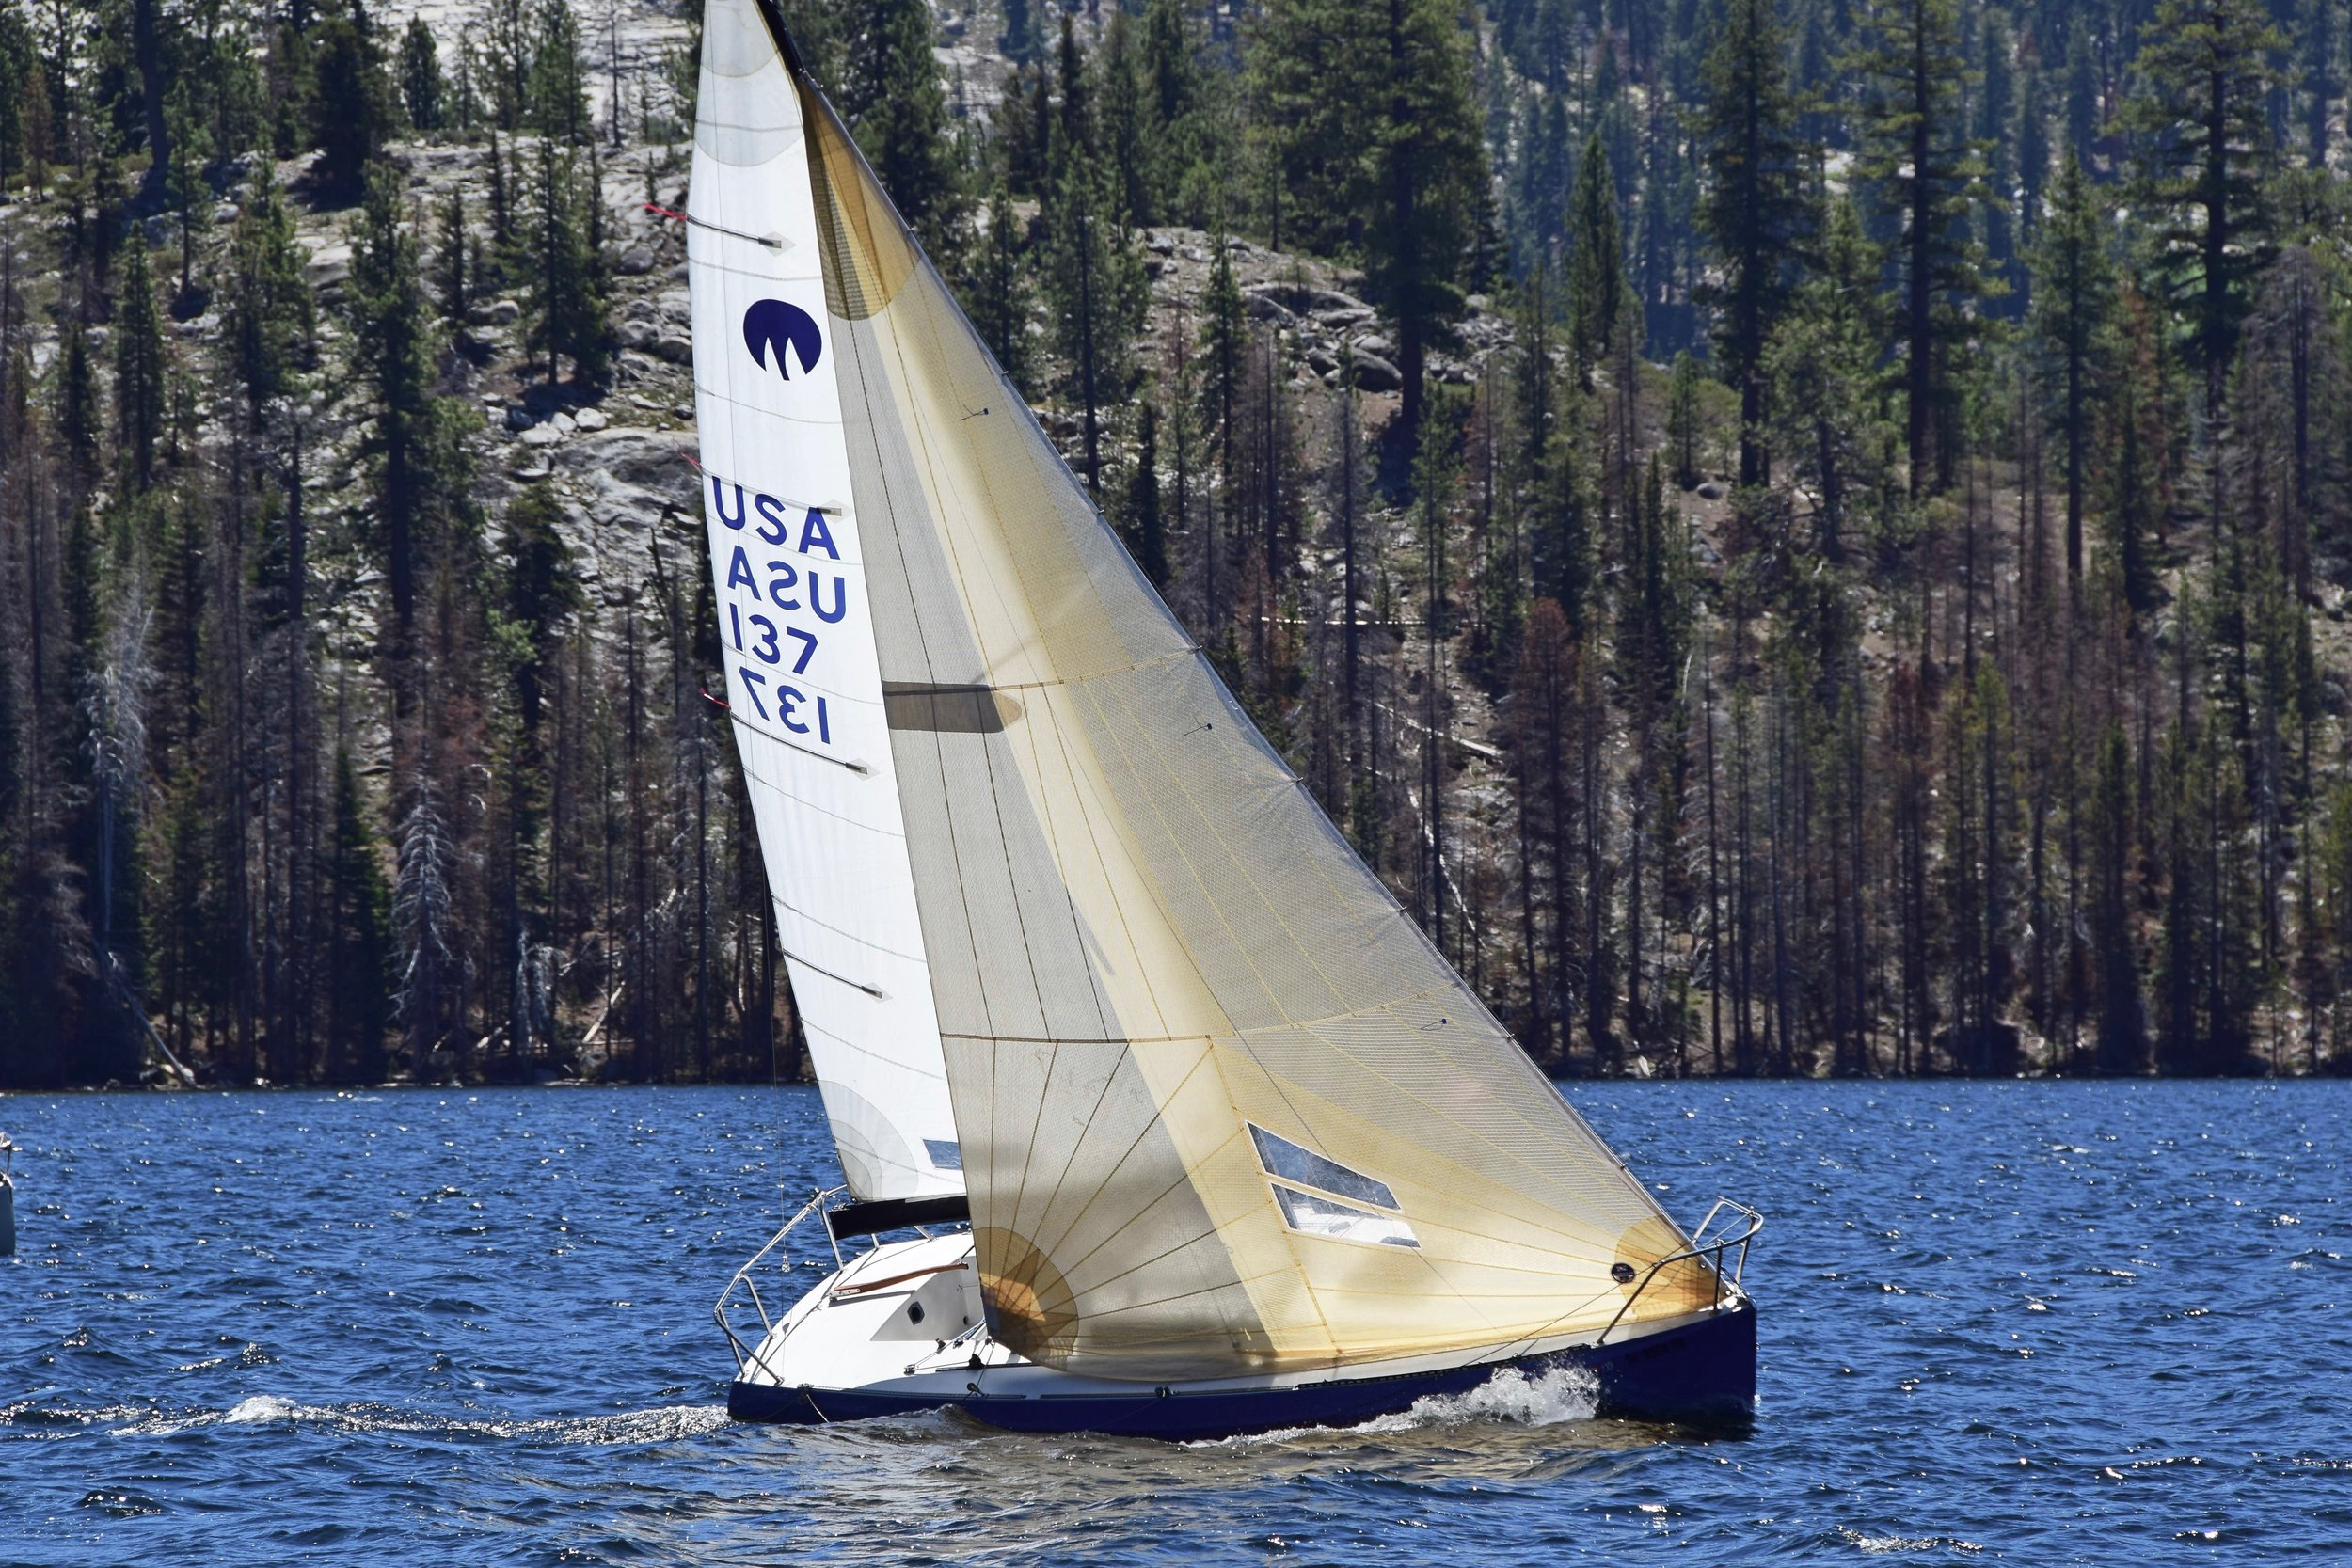 Last NorCal race for San-Diego-bound 137